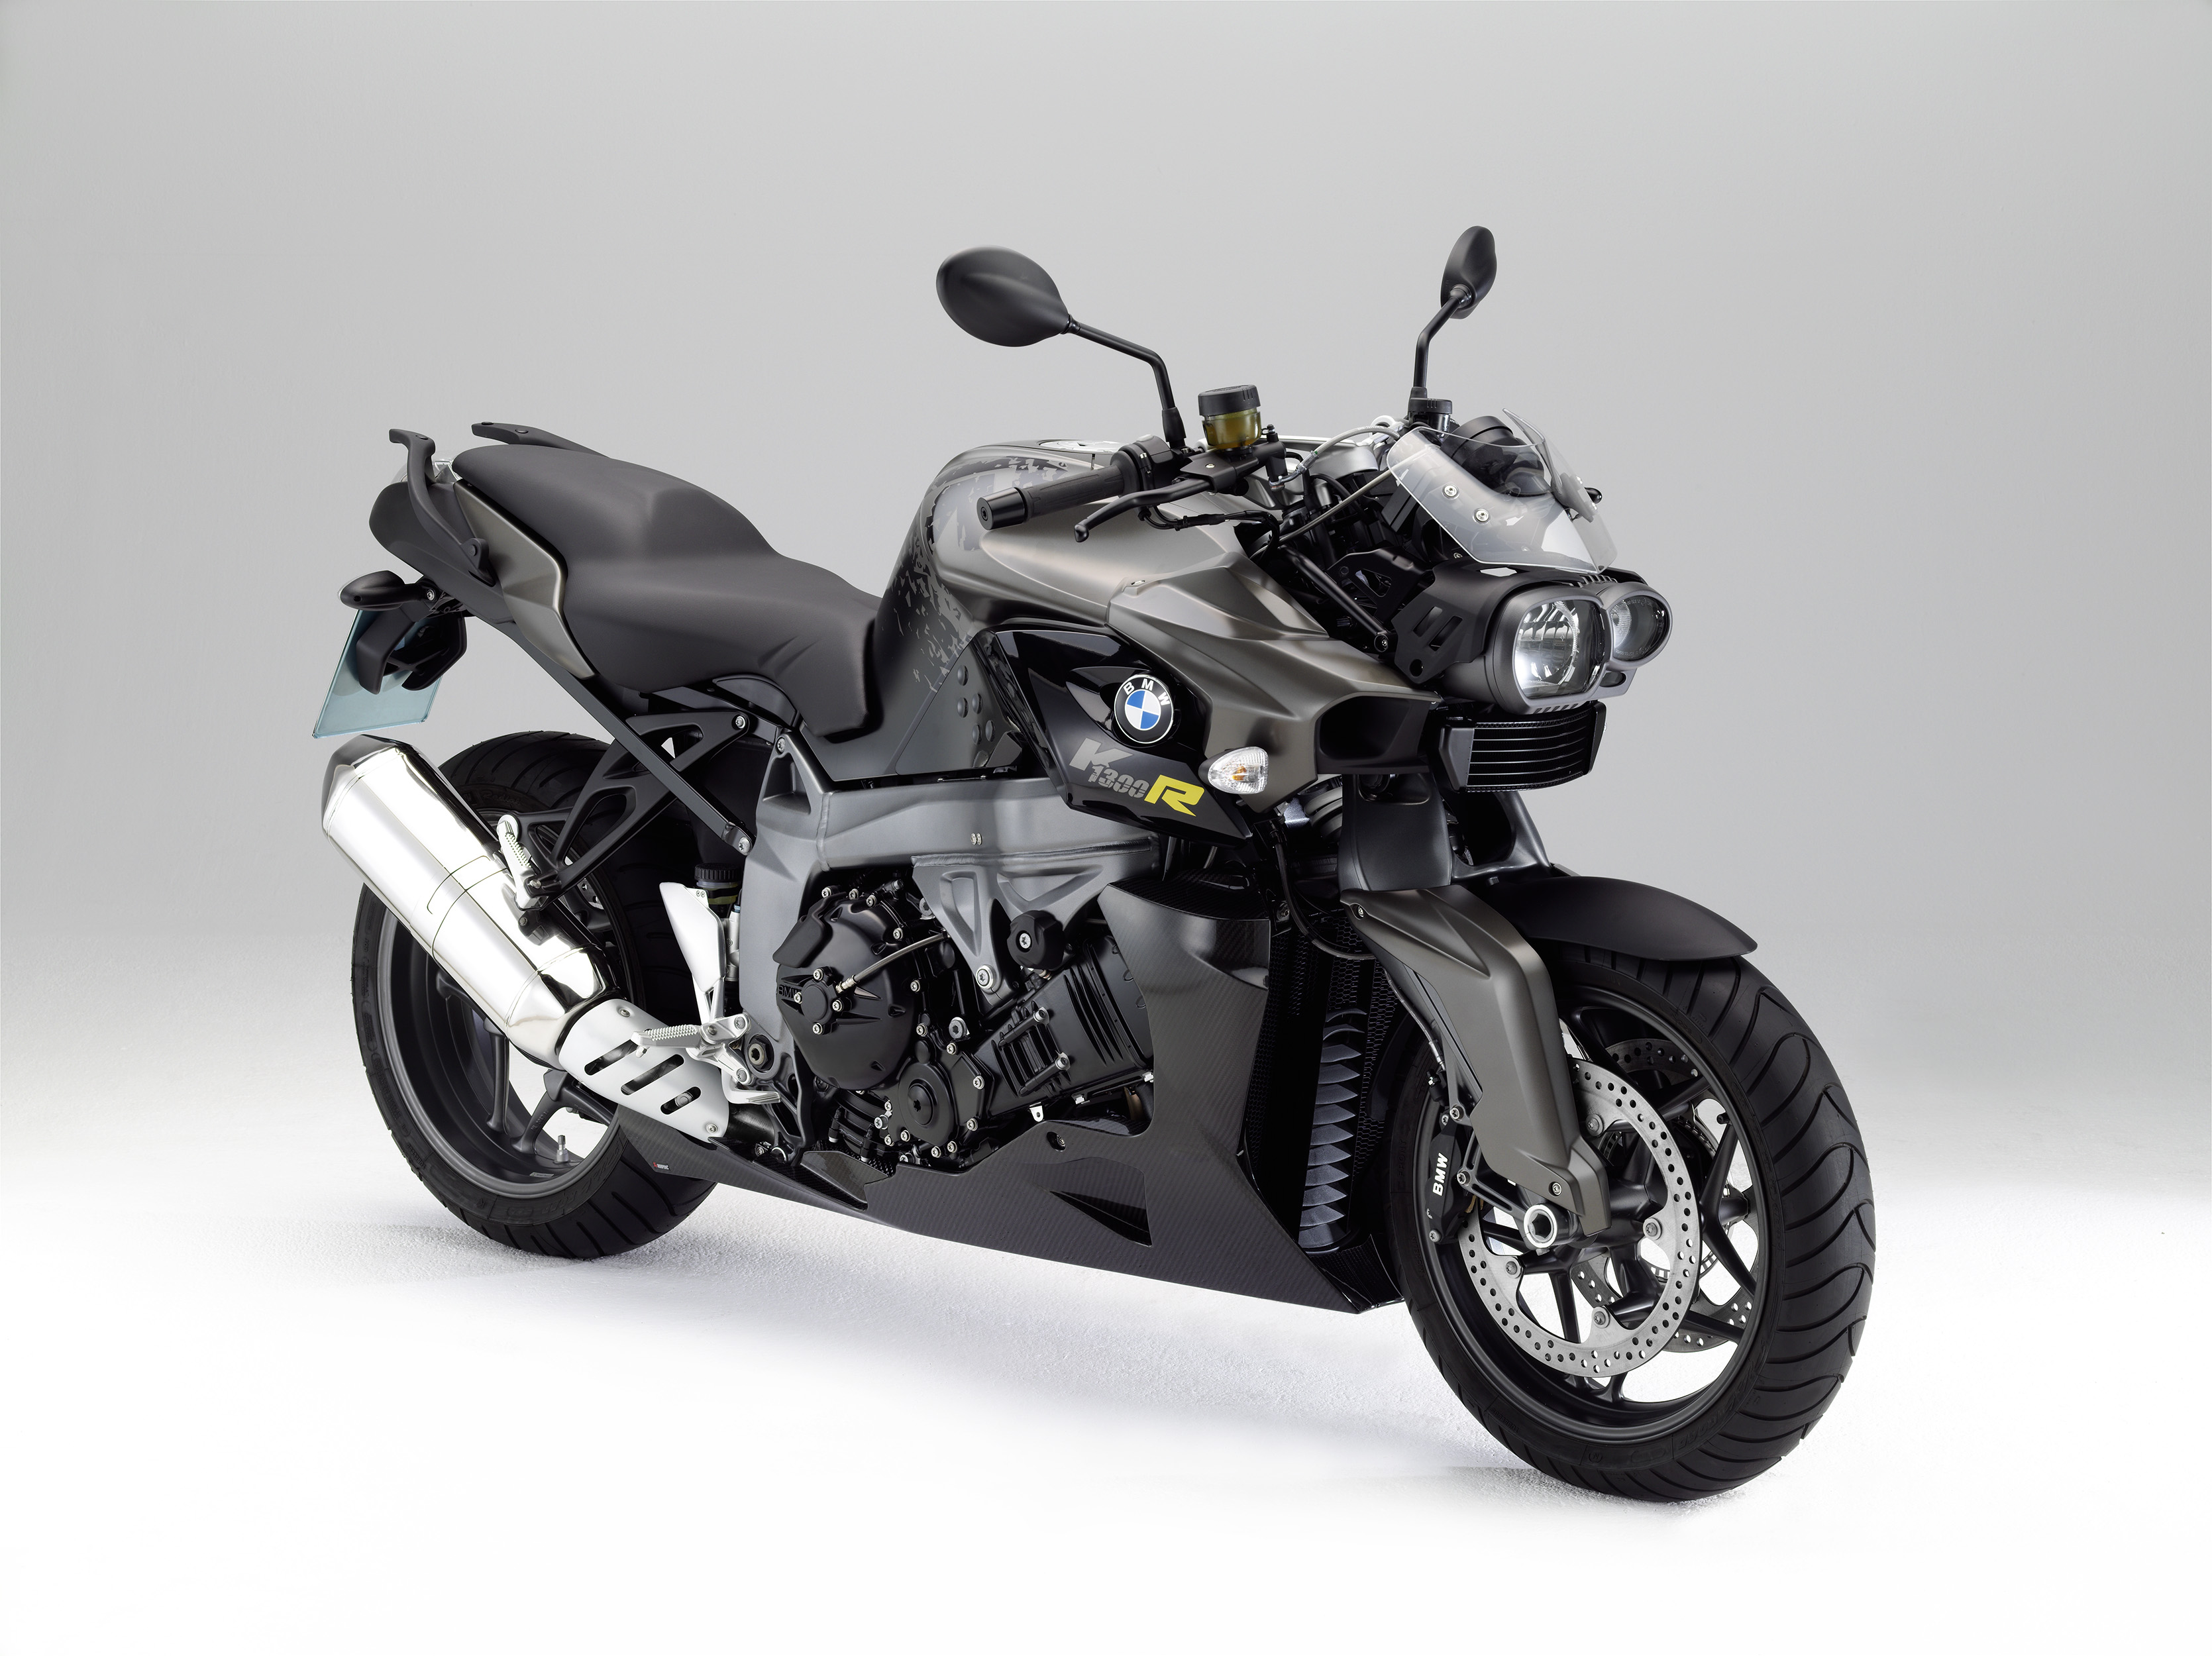 The New Bmw K1300r And Bmw K1300s Special Models 2012 Motorcycle